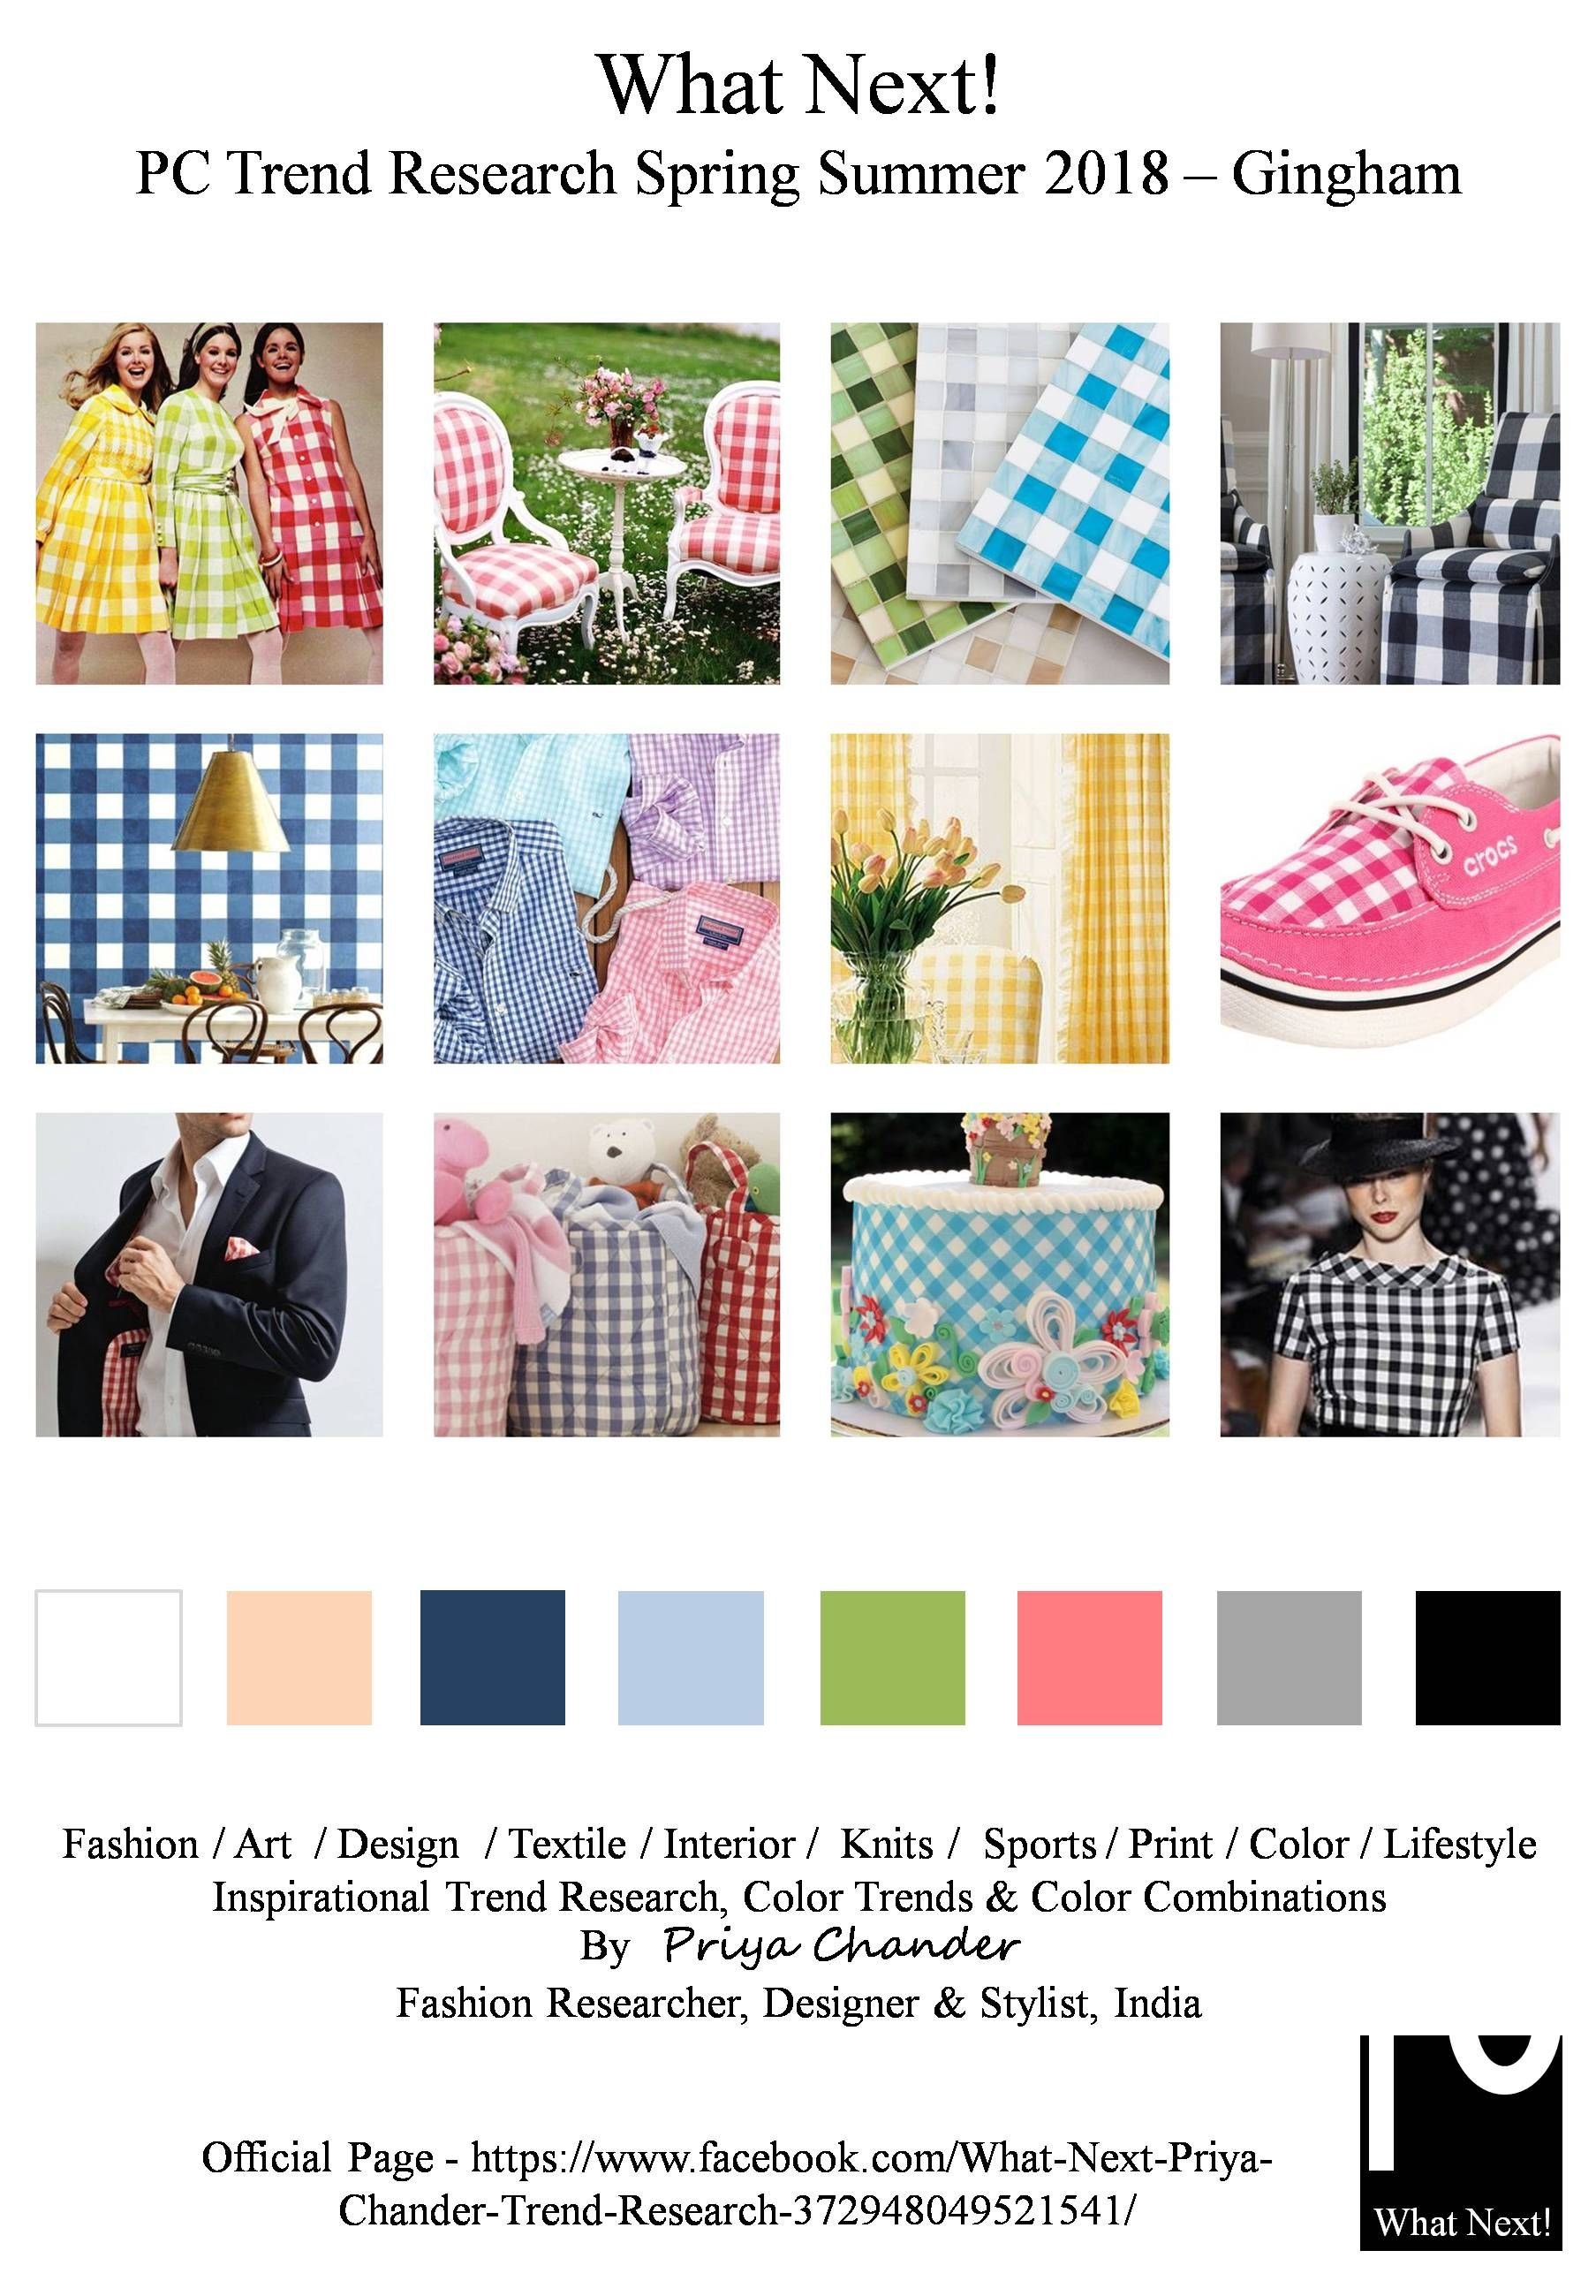 Pin by Nisha on forecast SS 18 | Color trends 2018, Color ...